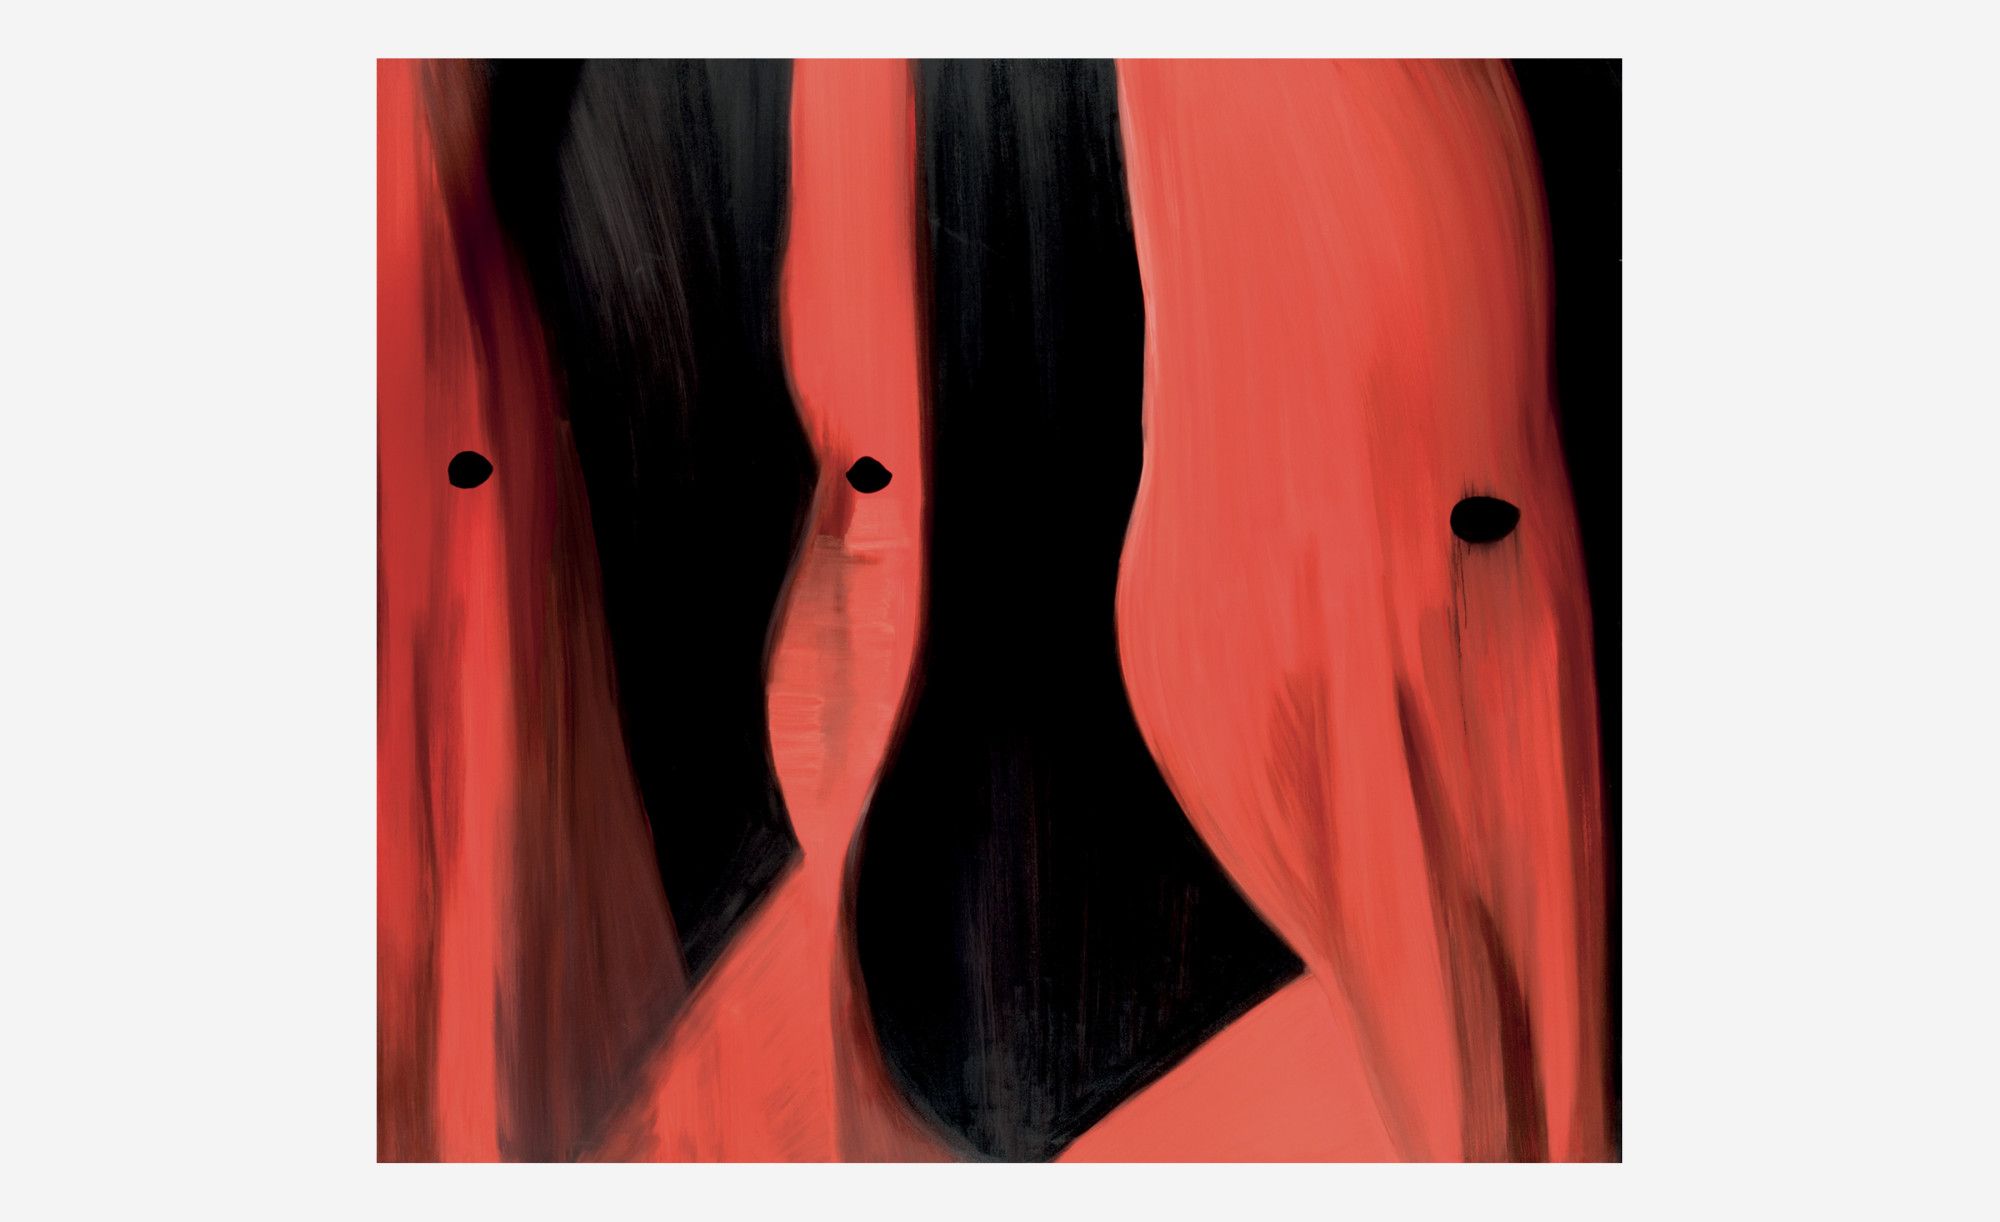 SHELTER PRESS, Painting Rituals Lindsey Bull, Jill Mulleady, Maria Thurn und Taxis